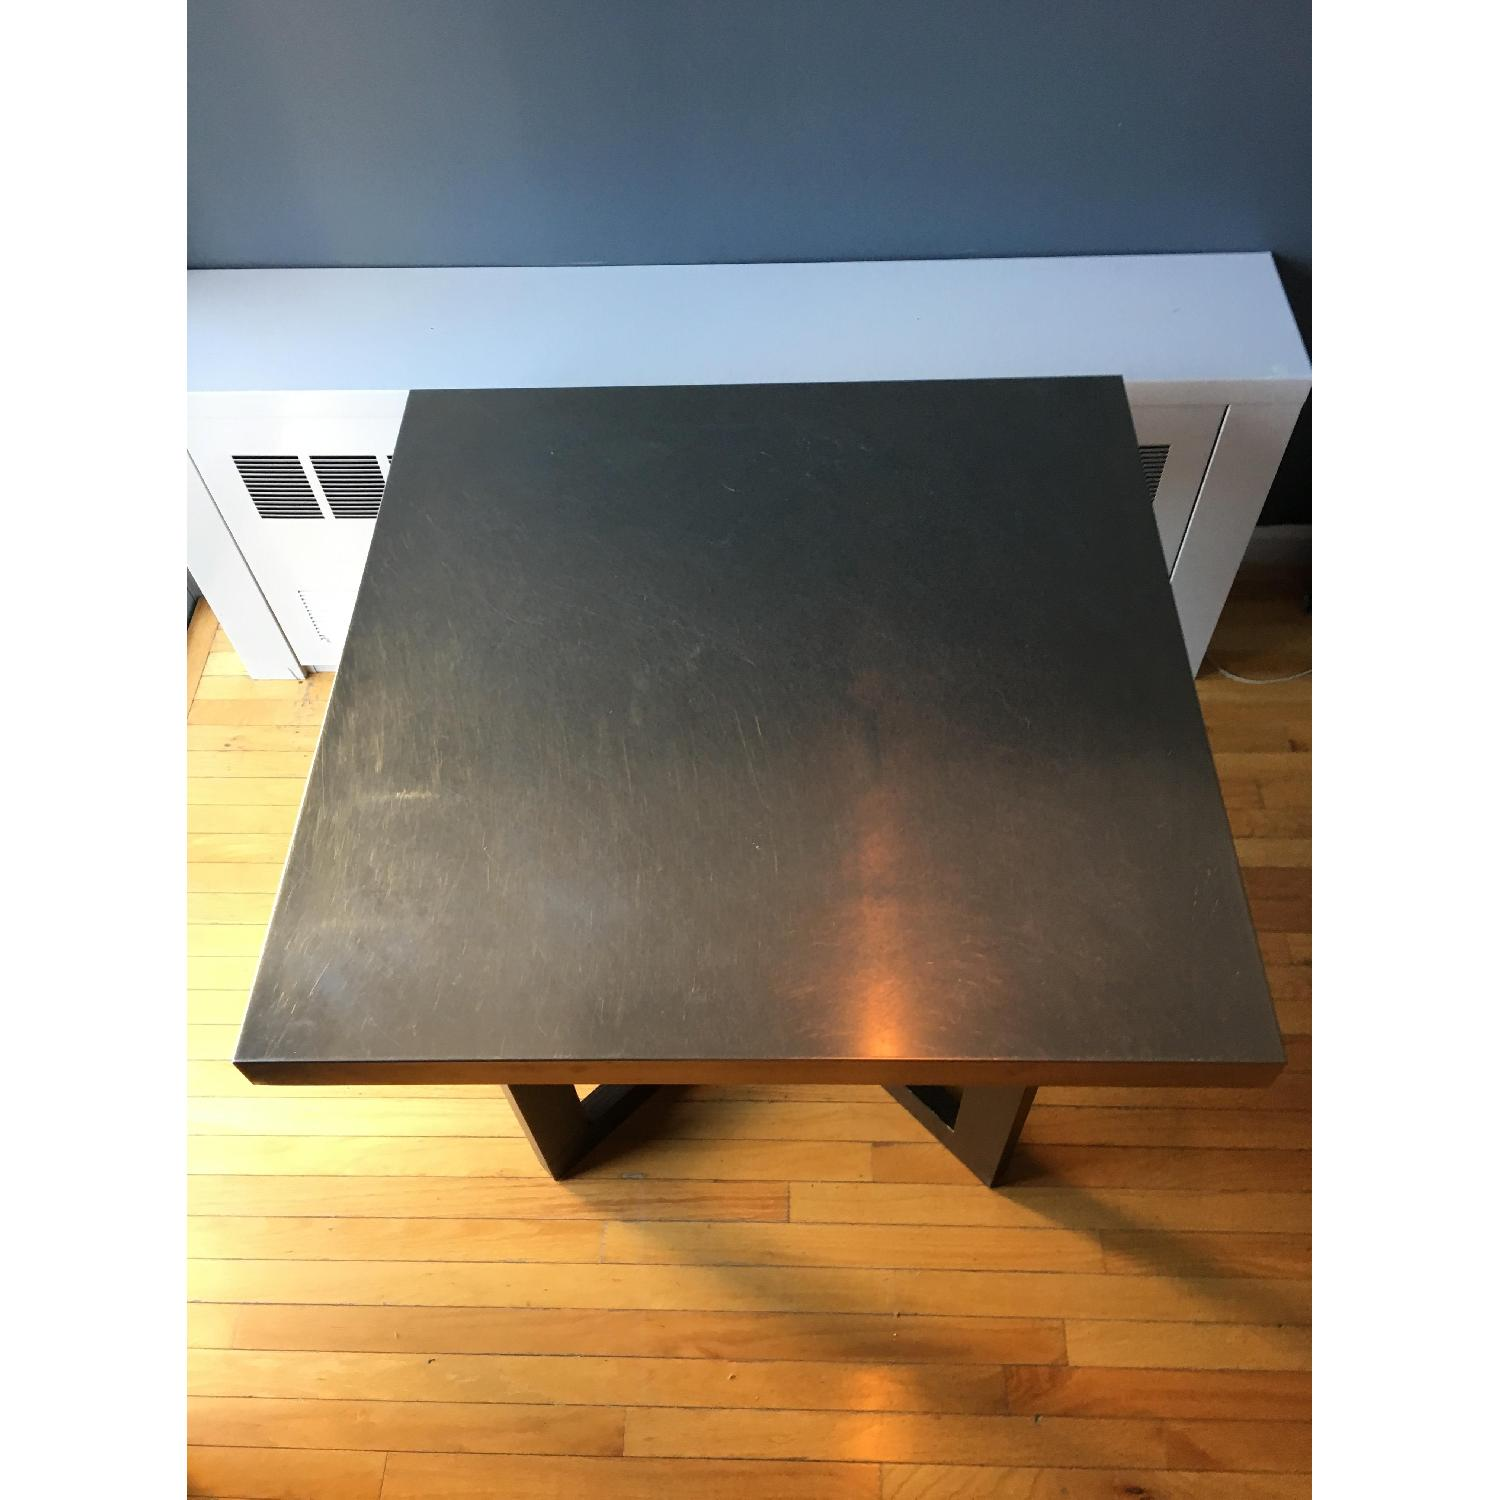 West Elm Solid Wood Table w/ Stainless Steel Top - image-1